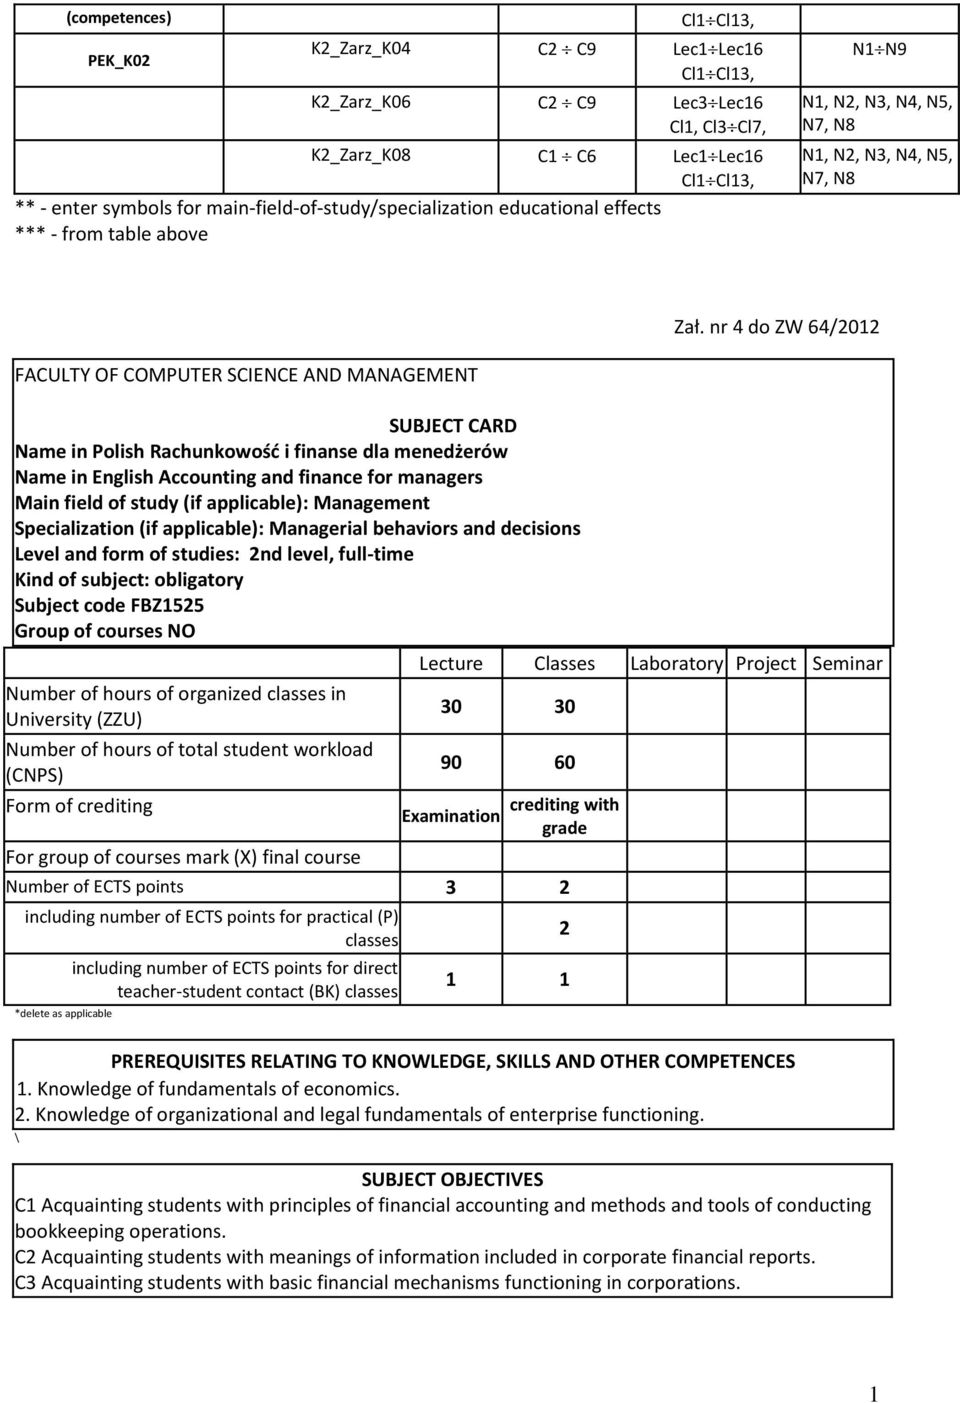 nr 4 do ZW 64/0 FACULTY OF COMPUTER SCIENCE AND MANAGEMENT SUBJECT CARD Name in Polish Rachunkowość i finanse dla menedżerów Name in English Accounting and finance for managers Main field of study